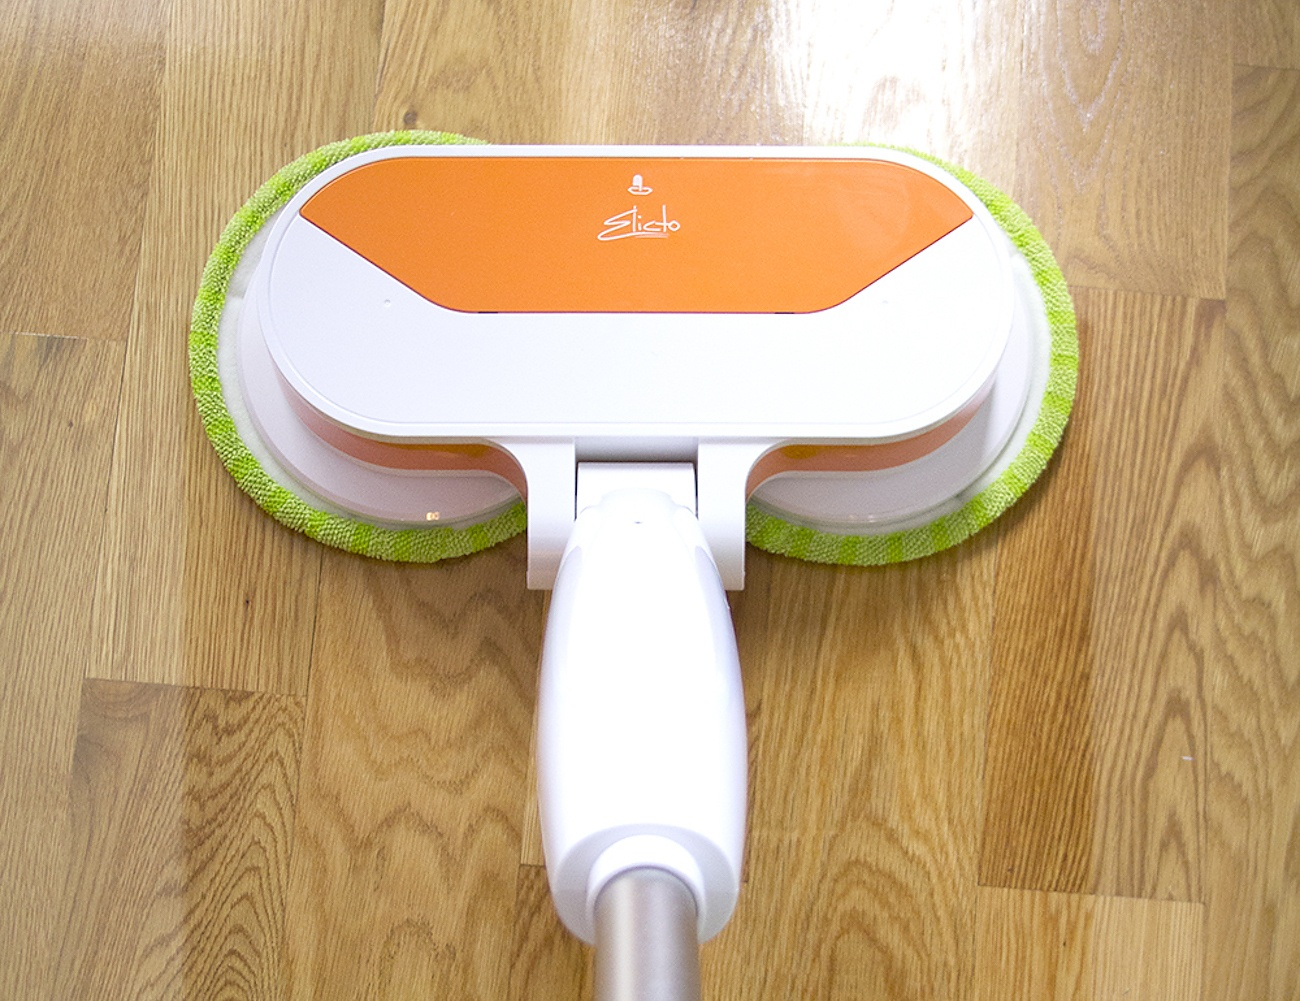 The Elicto Electronic Mop Will Make Your Floors Glisten